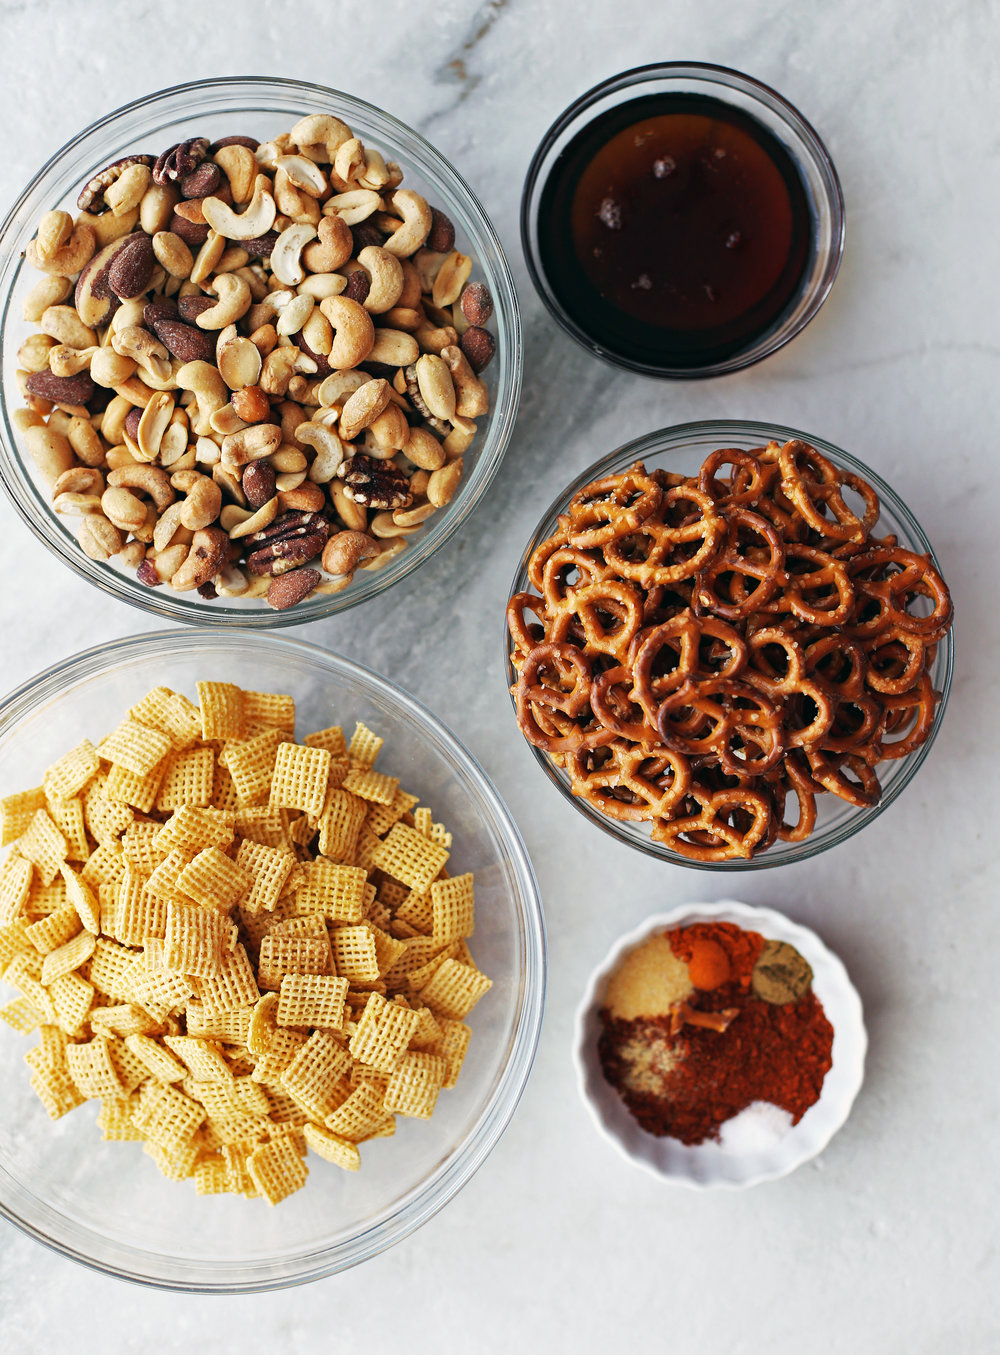 Glass bowls filled with Chex cereal, mini pretzels, mixed nuts, maple syrup, and spices.